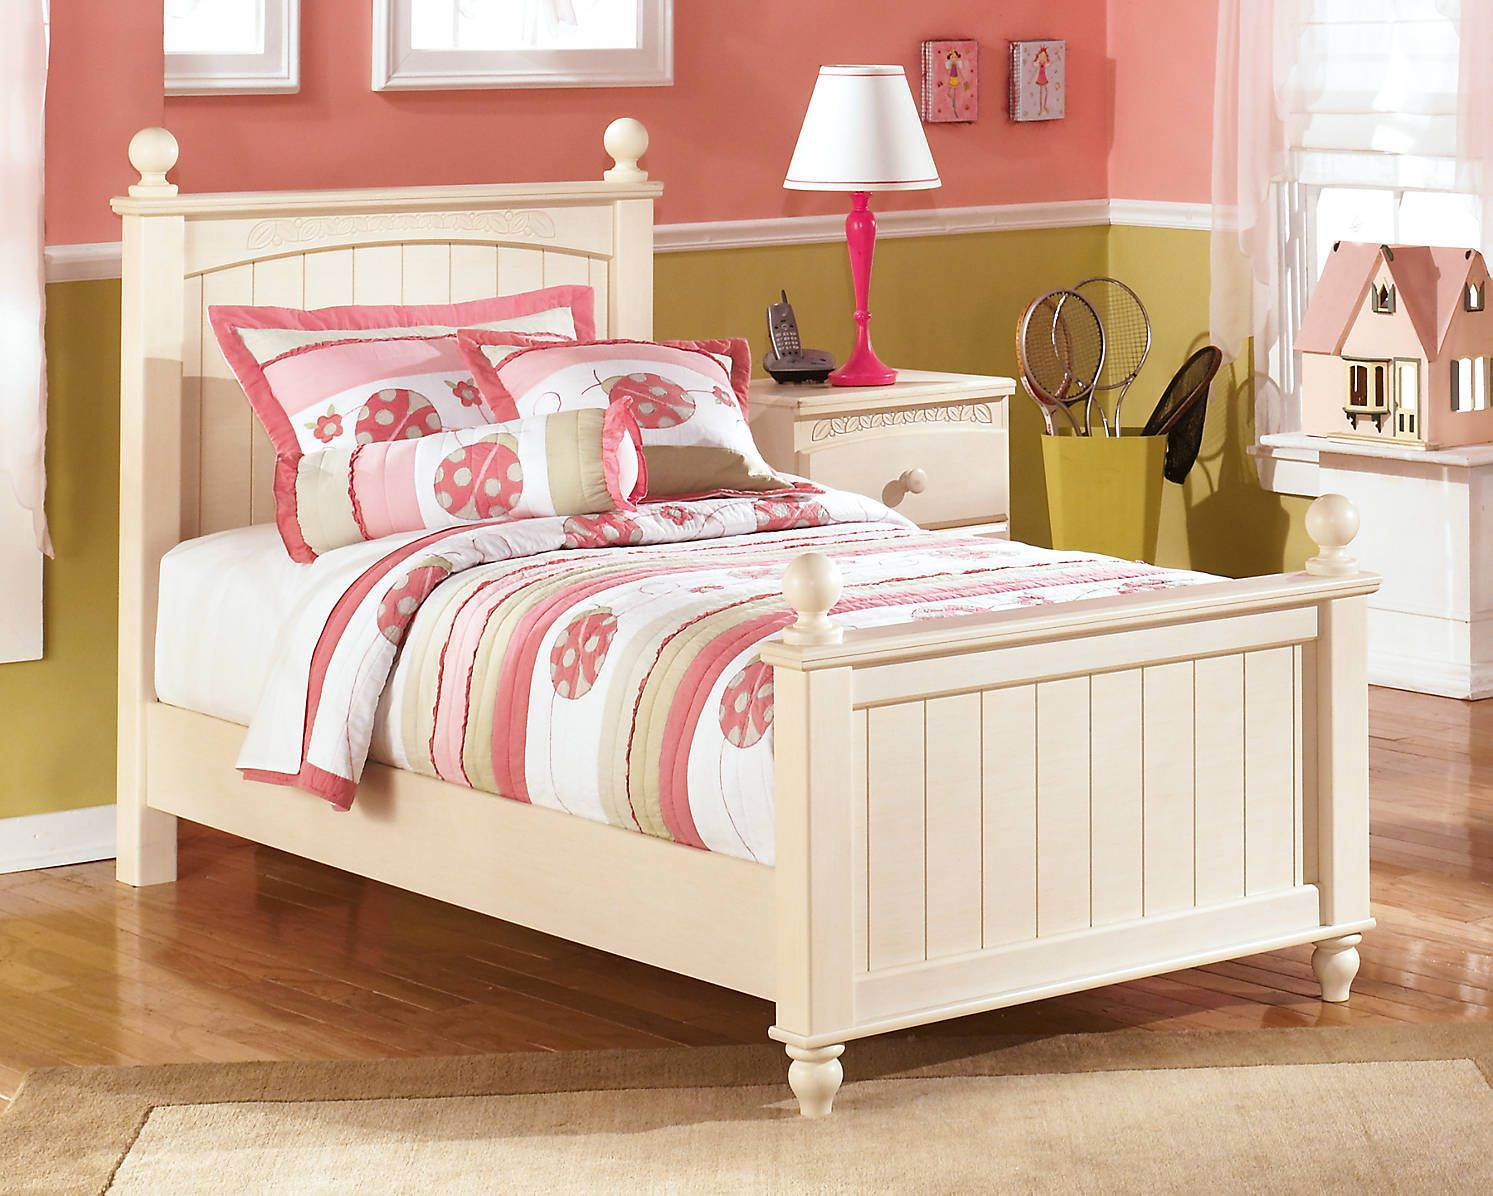 Best Cottage Style White Twin Bed Poster Frame And Nightstand 640 x 480